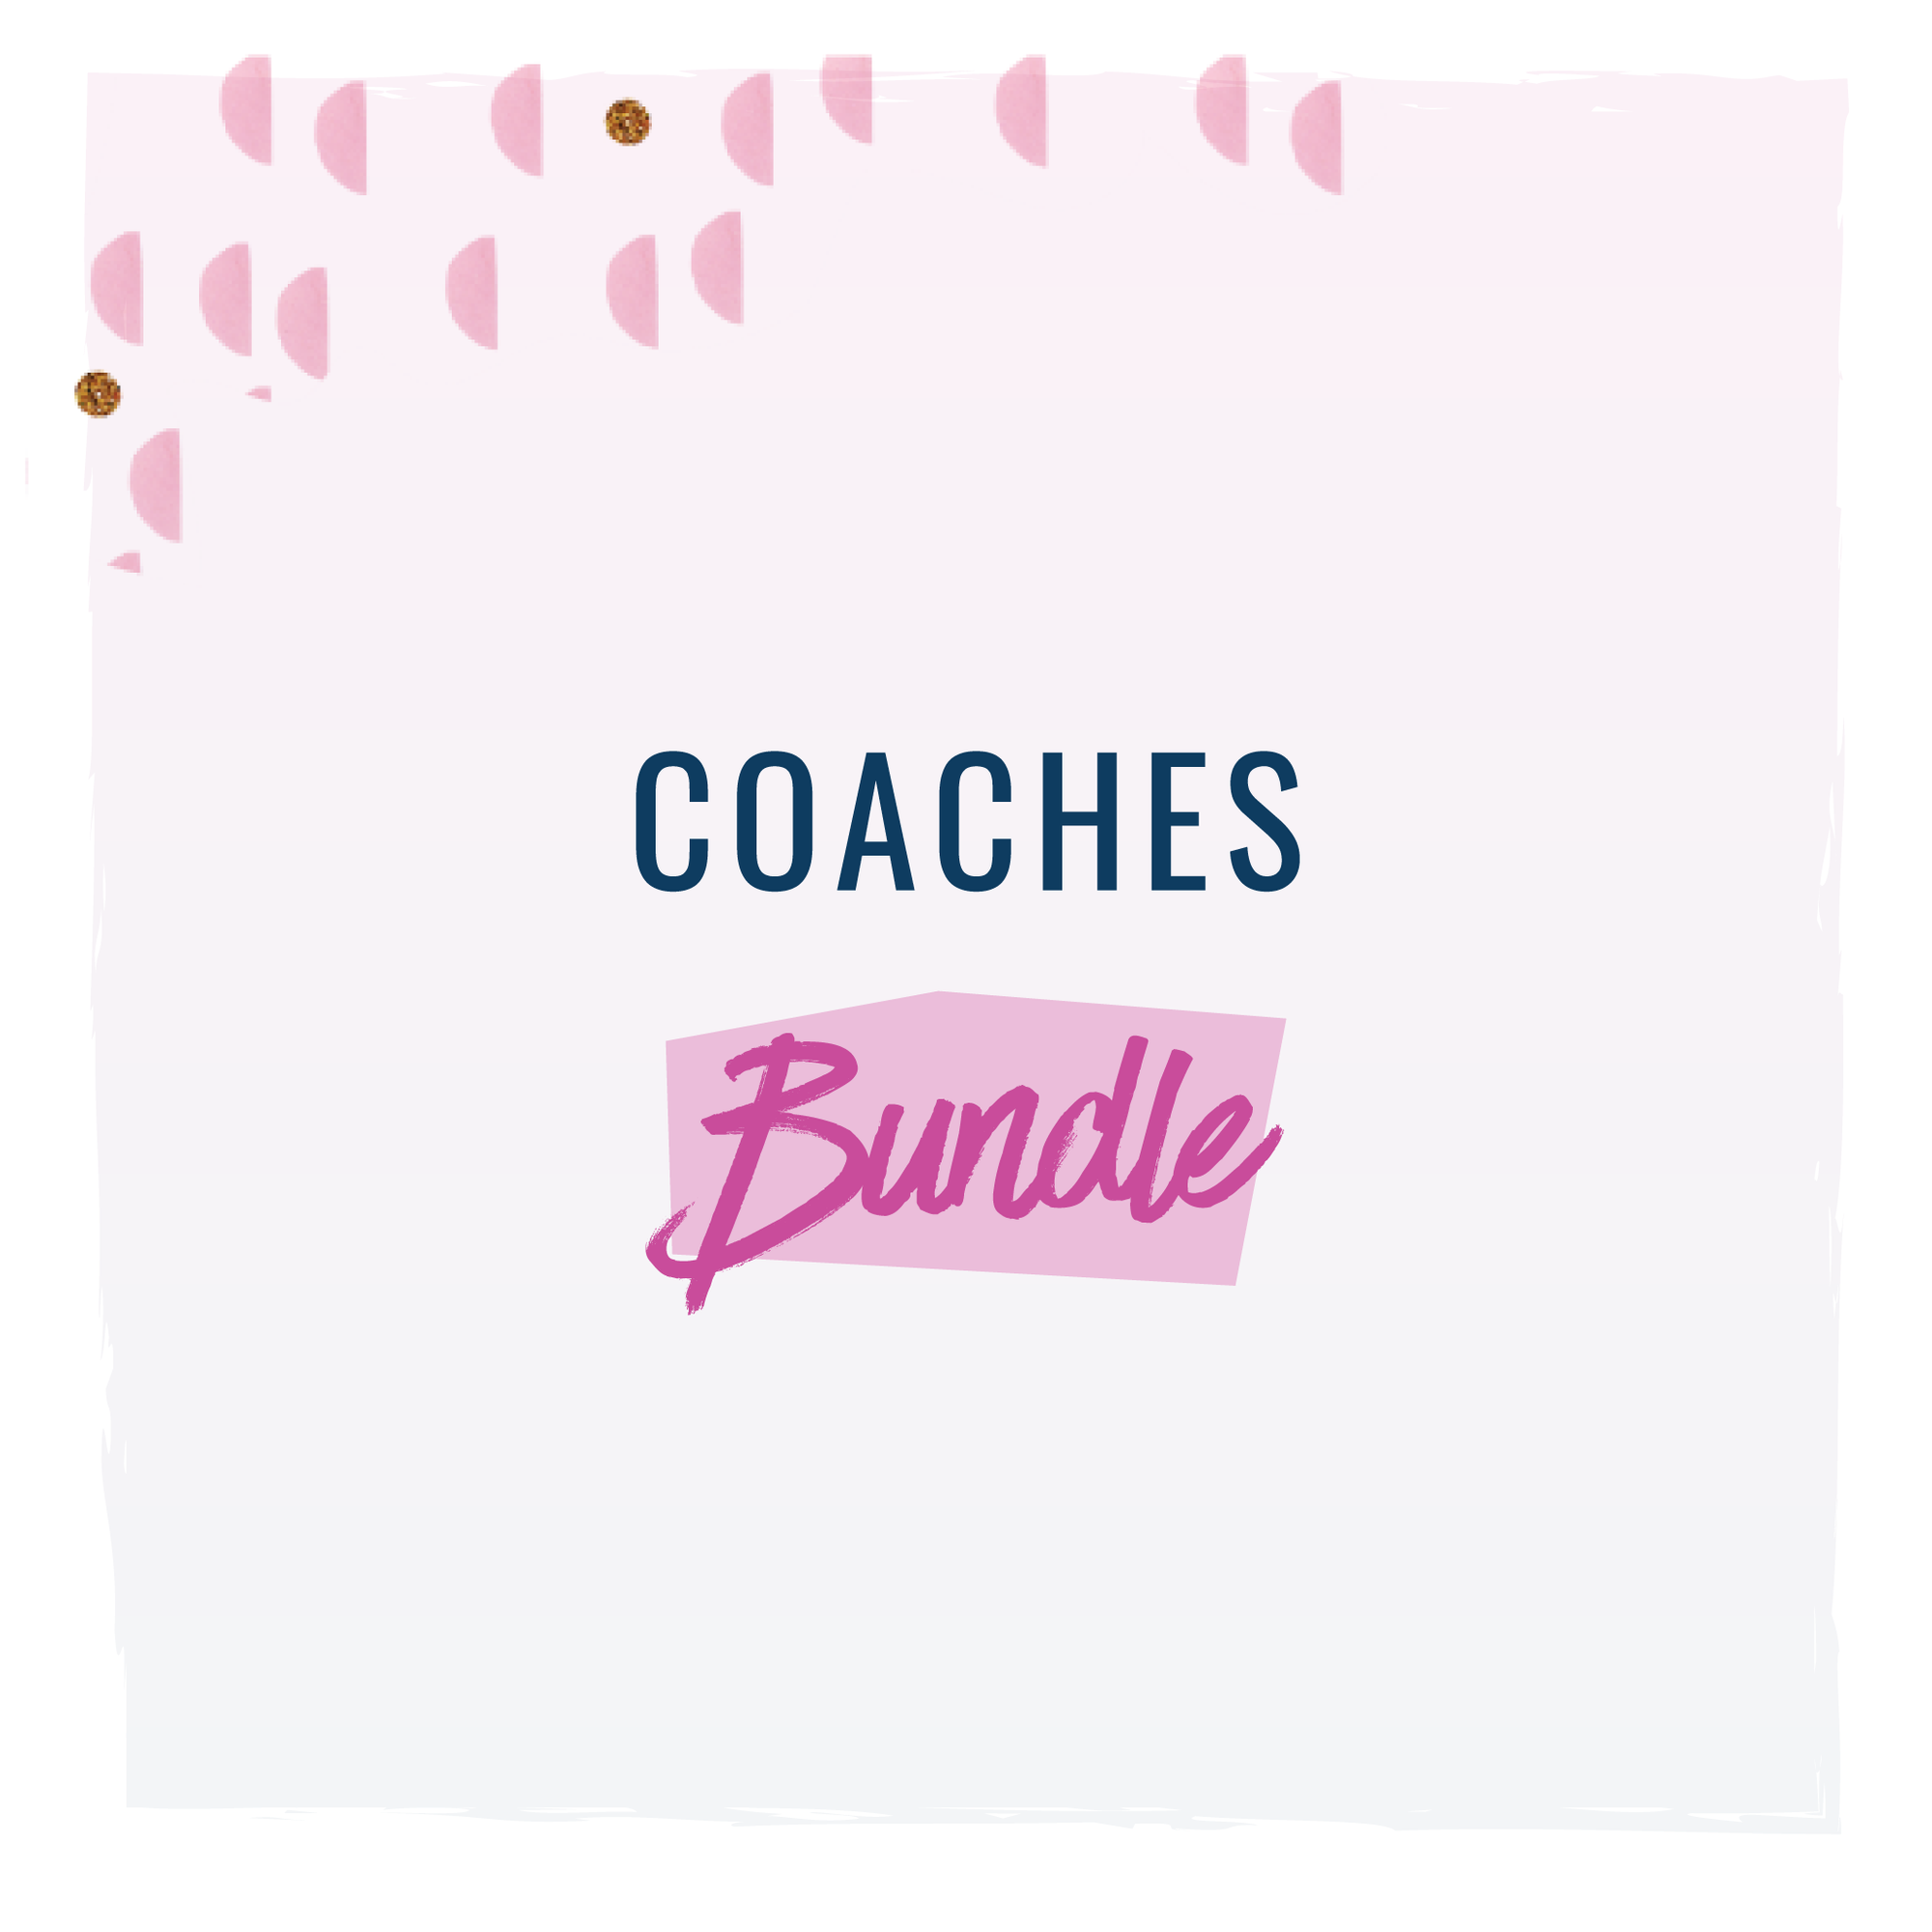 Contract Bundle for Coaches from The Contract Shop